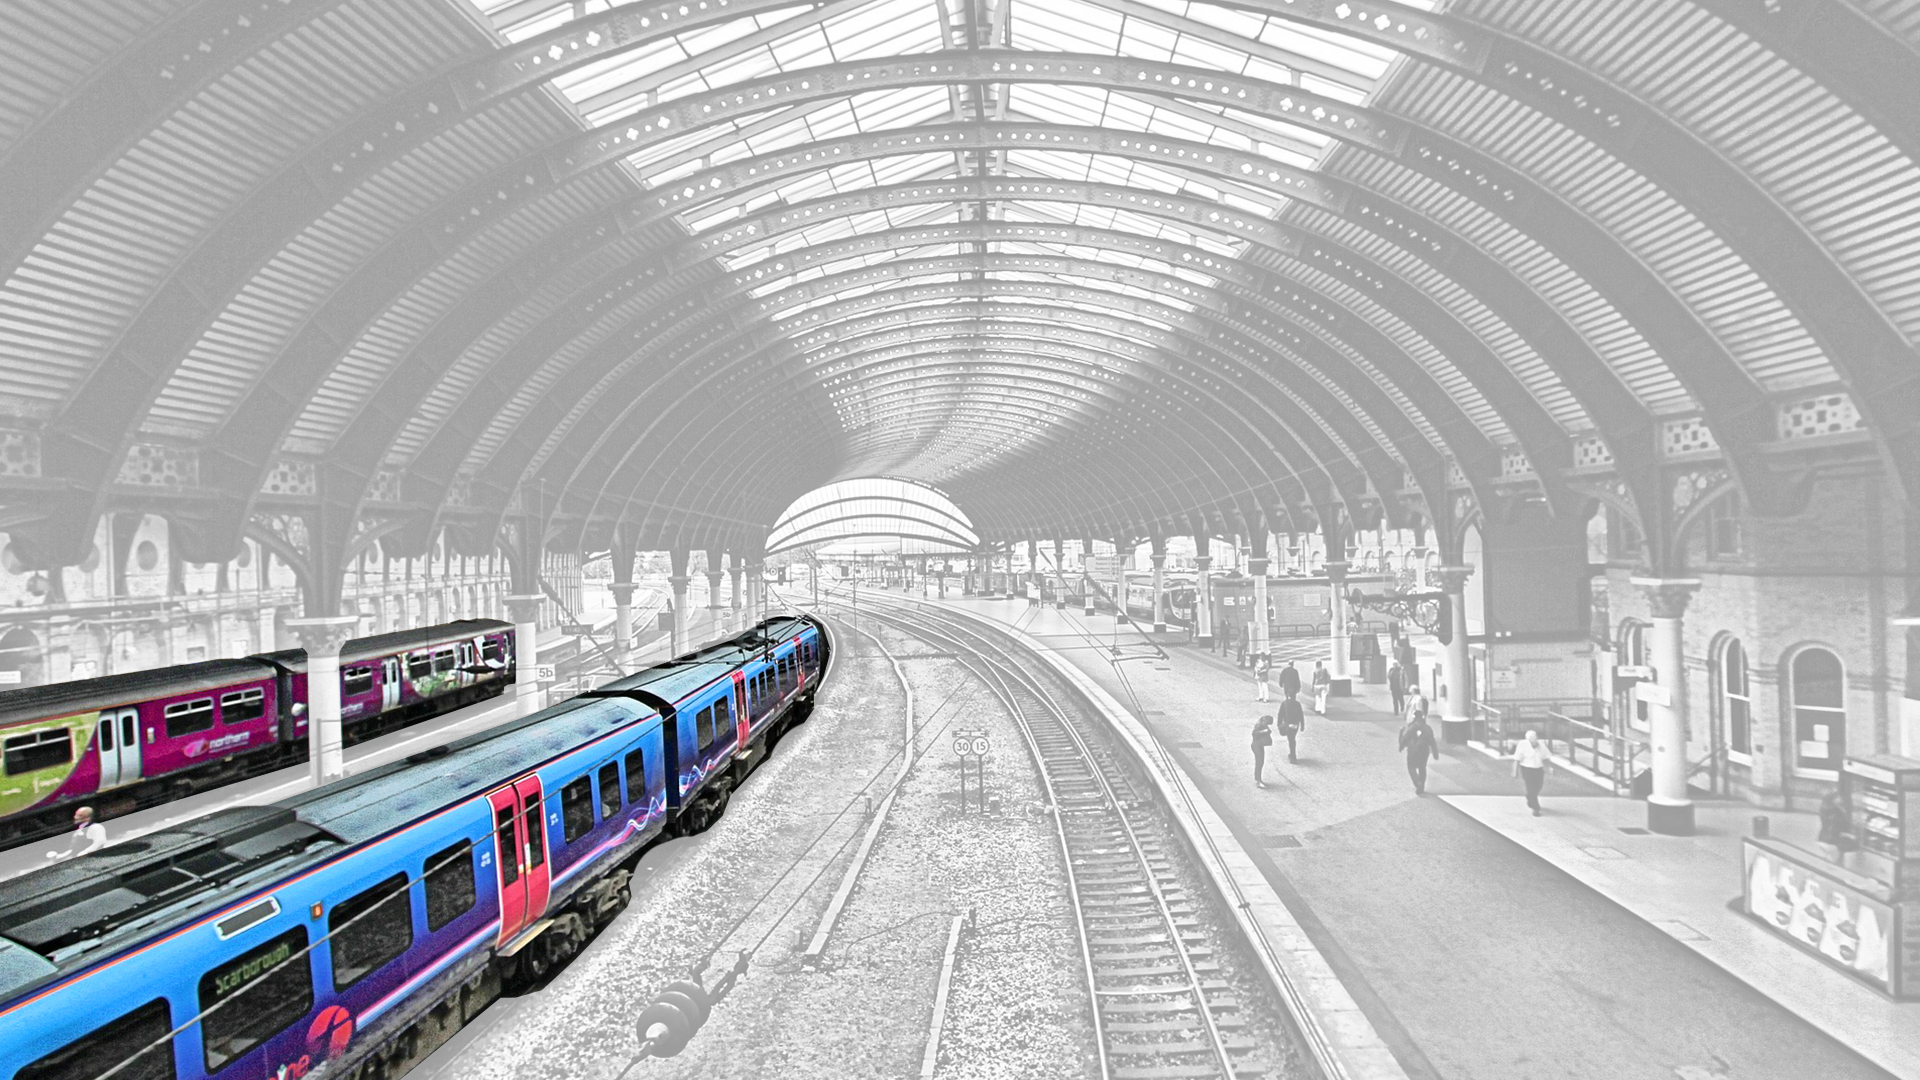 York station black and white with colourful train